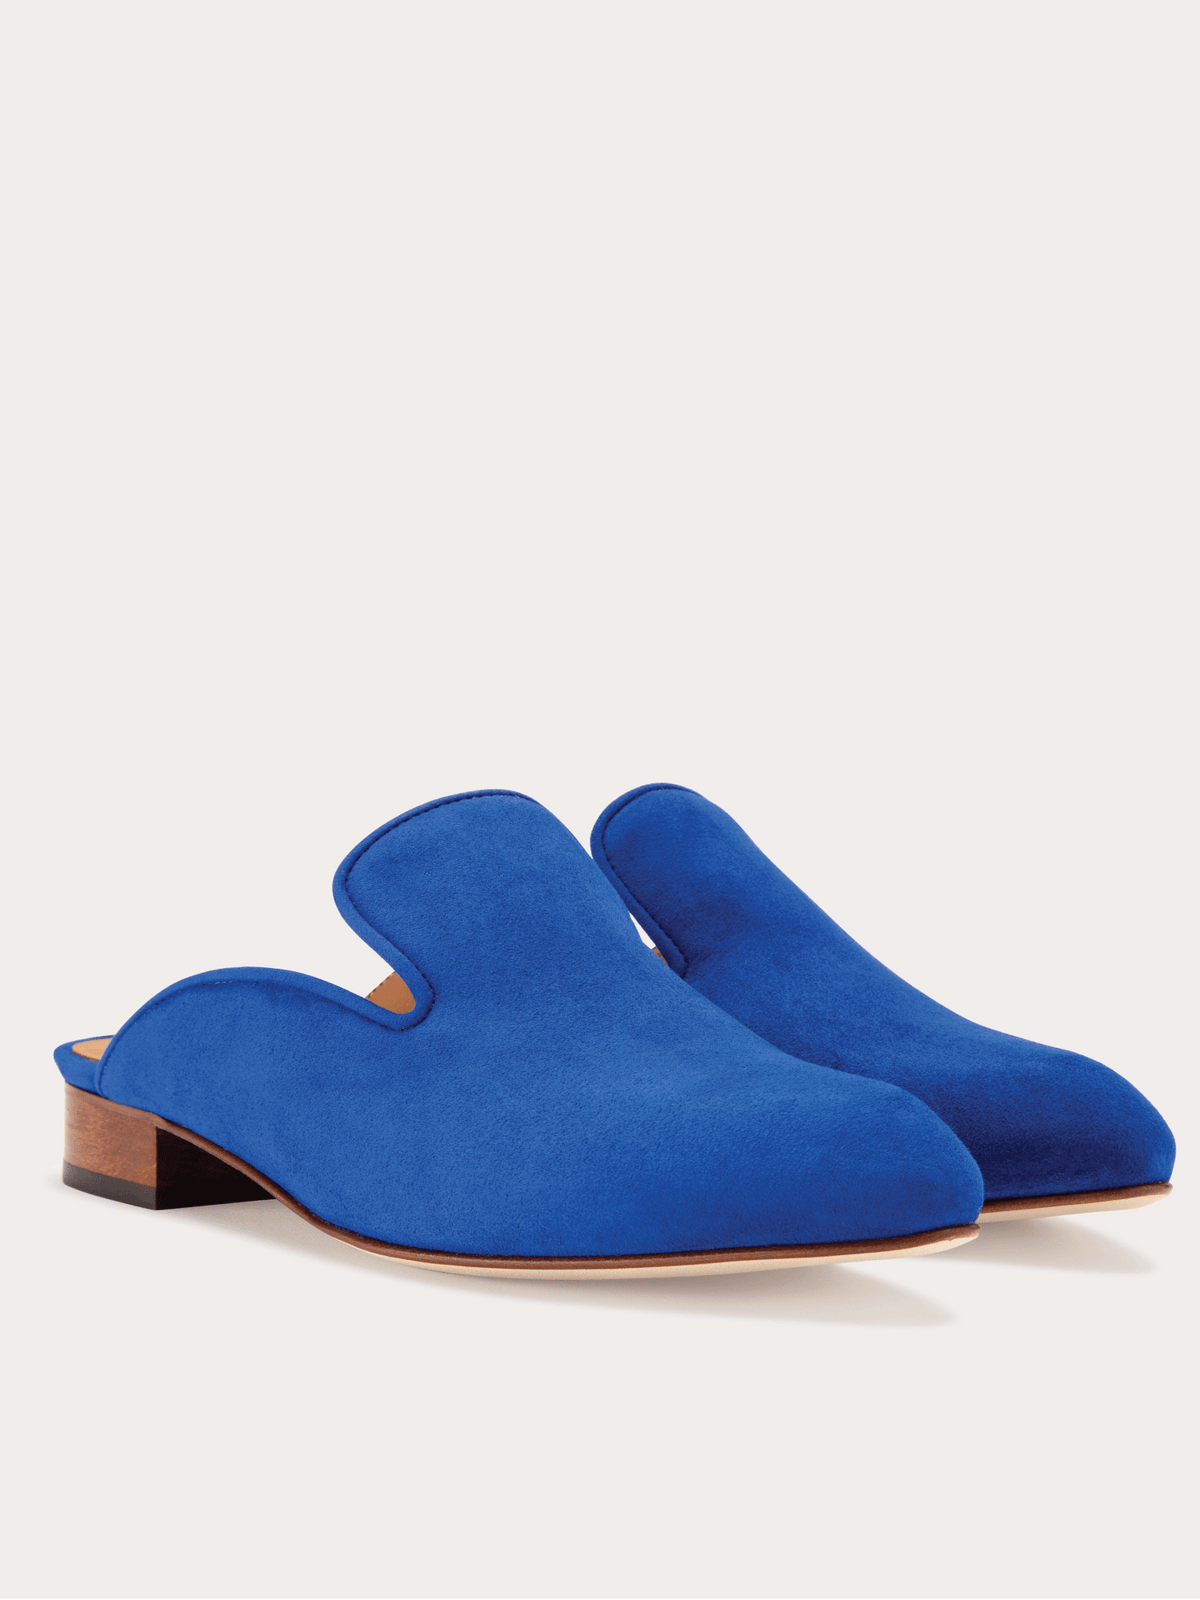 The Tilda Slide in Lapis